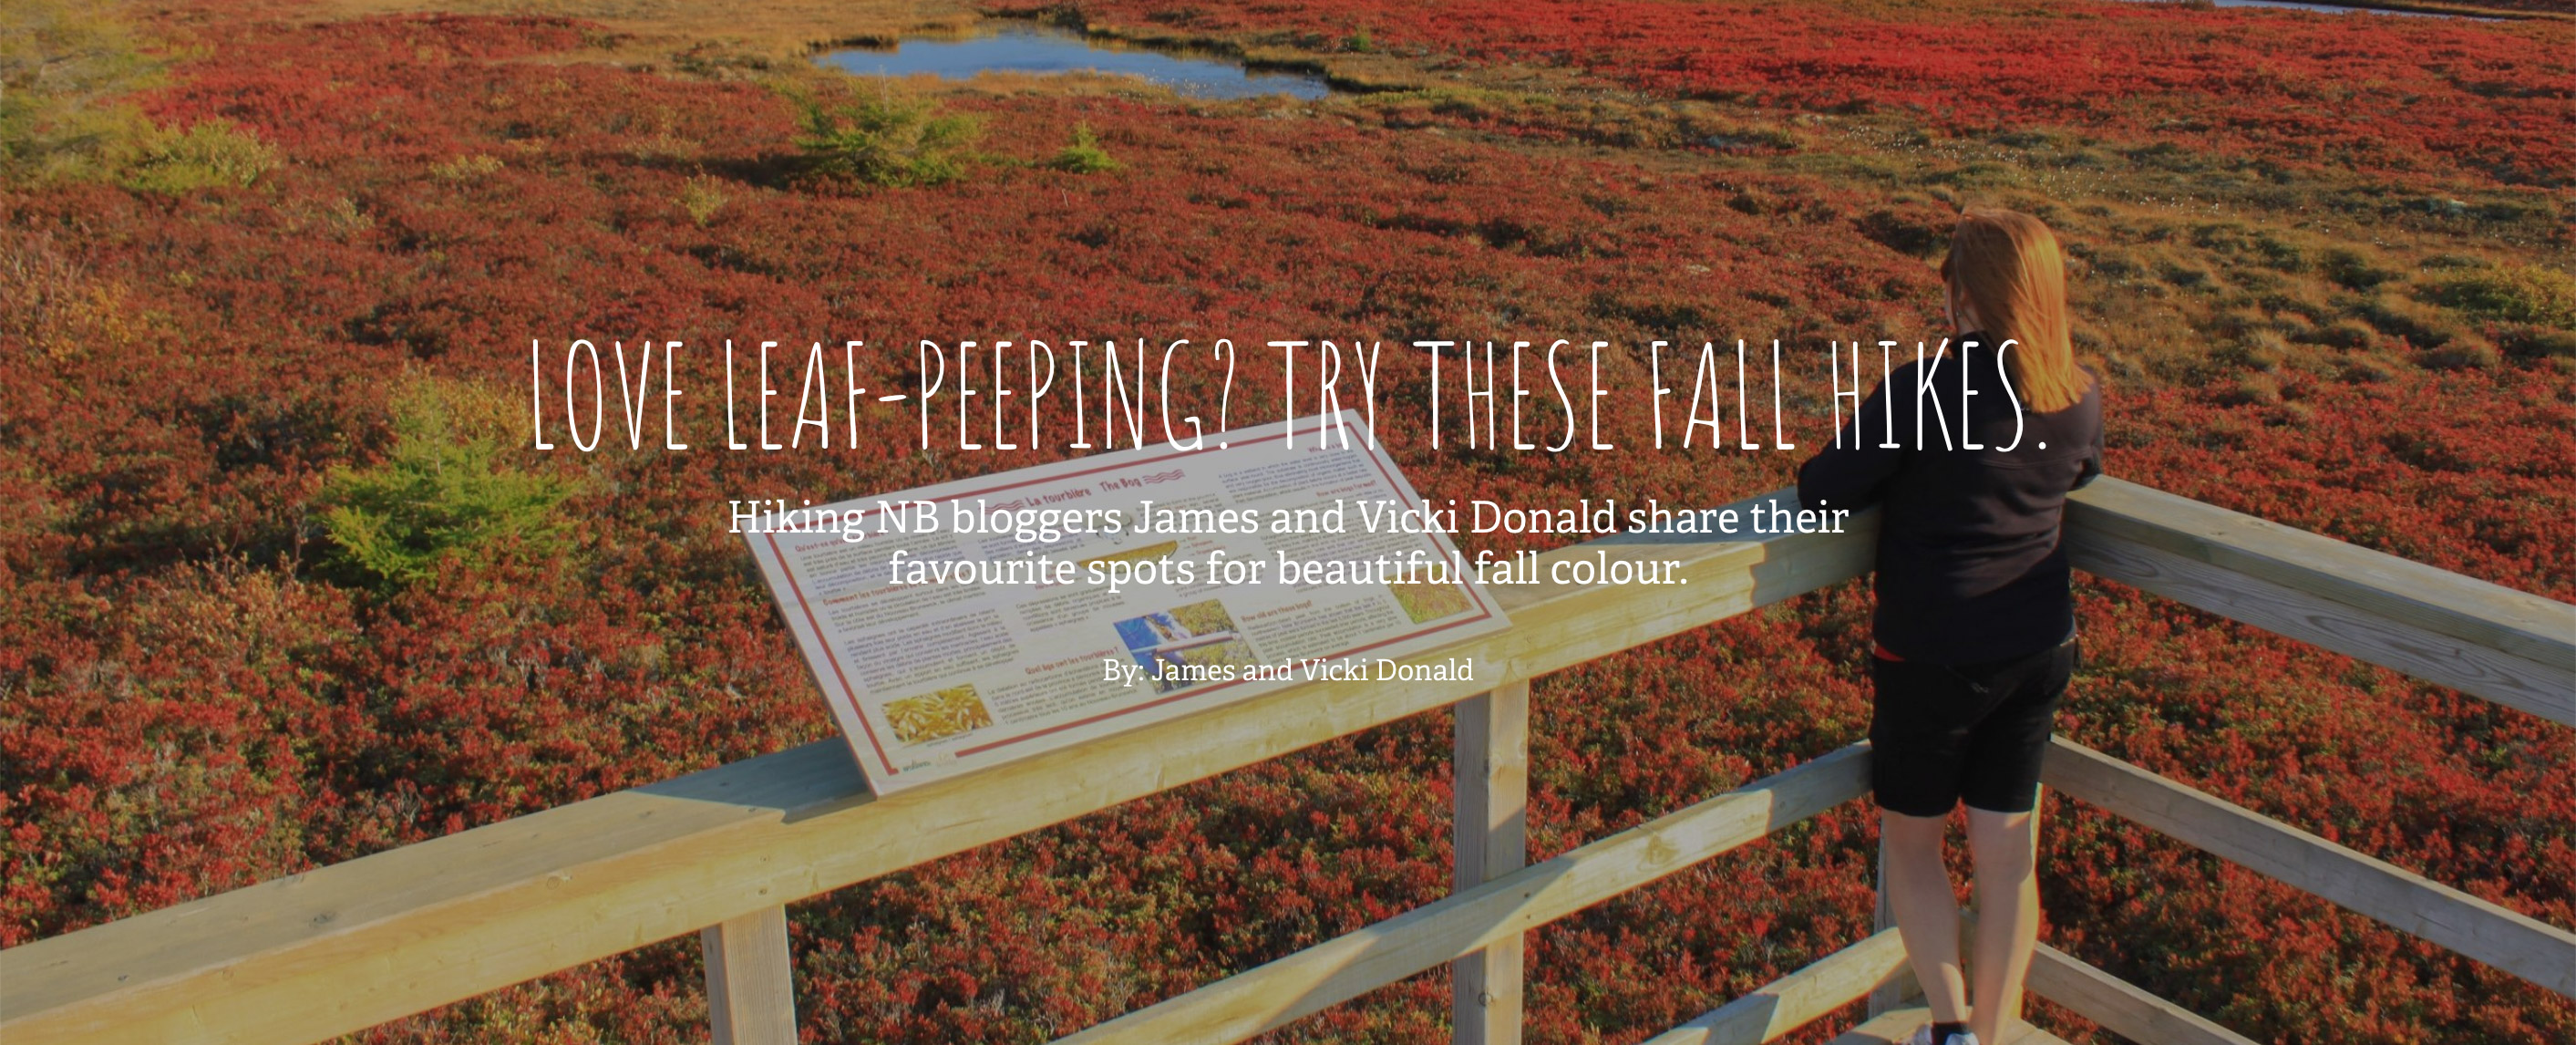 Leaf Peeping Hikes Blog Post